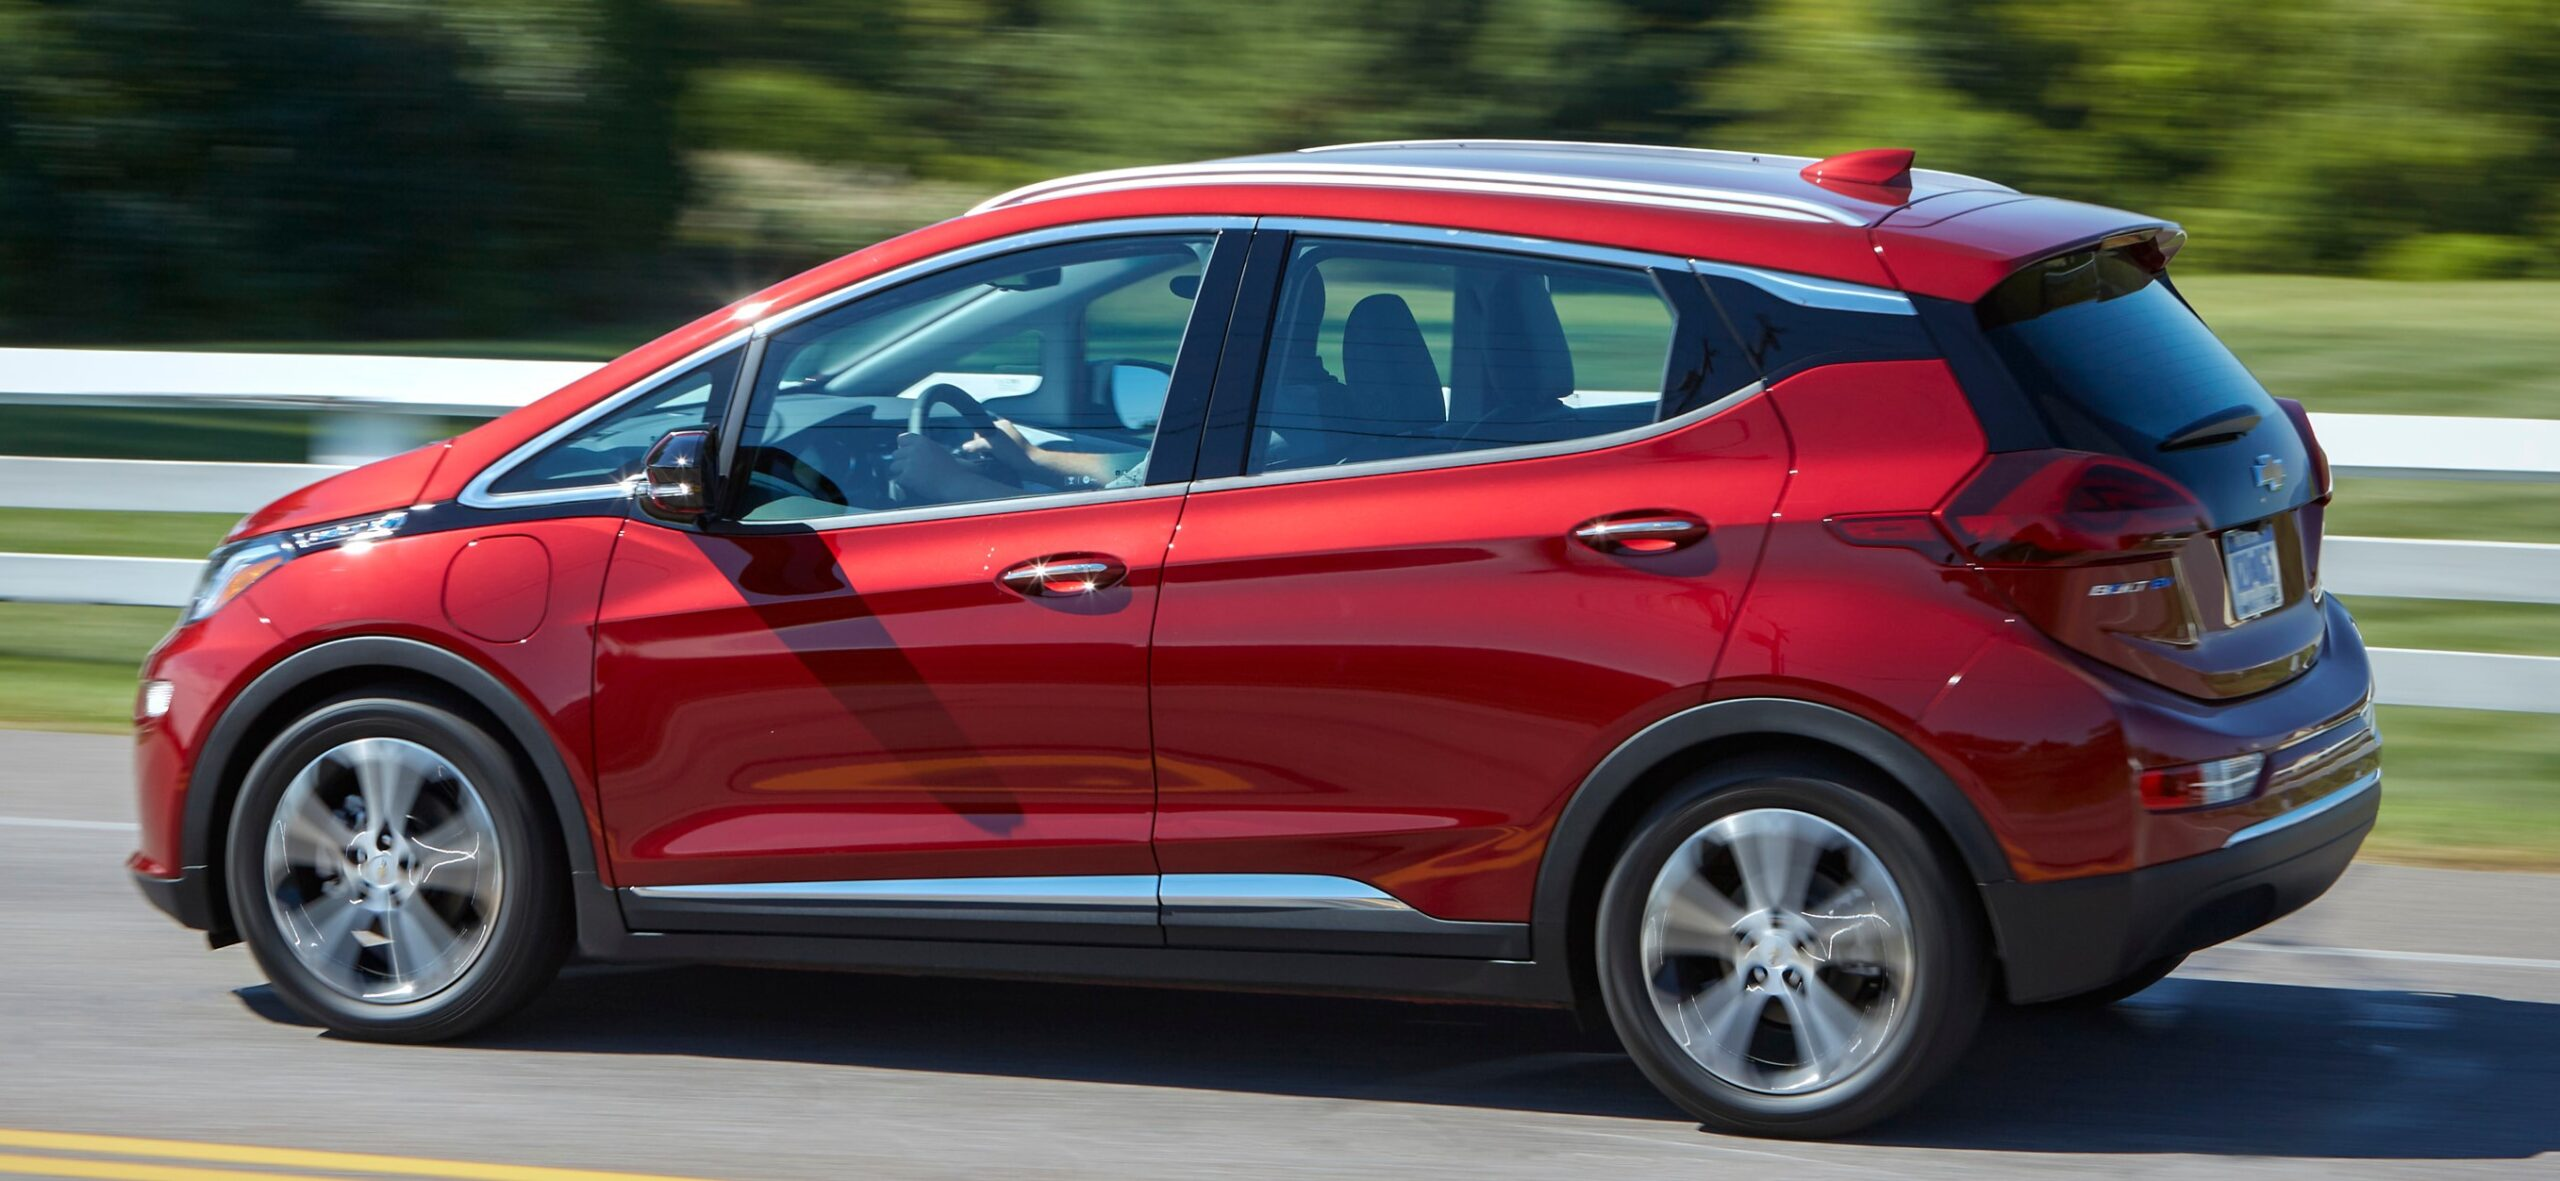 The 2020 Chevrolet Bolt EV Premier (electric) took top honors in the AAA auto guide.